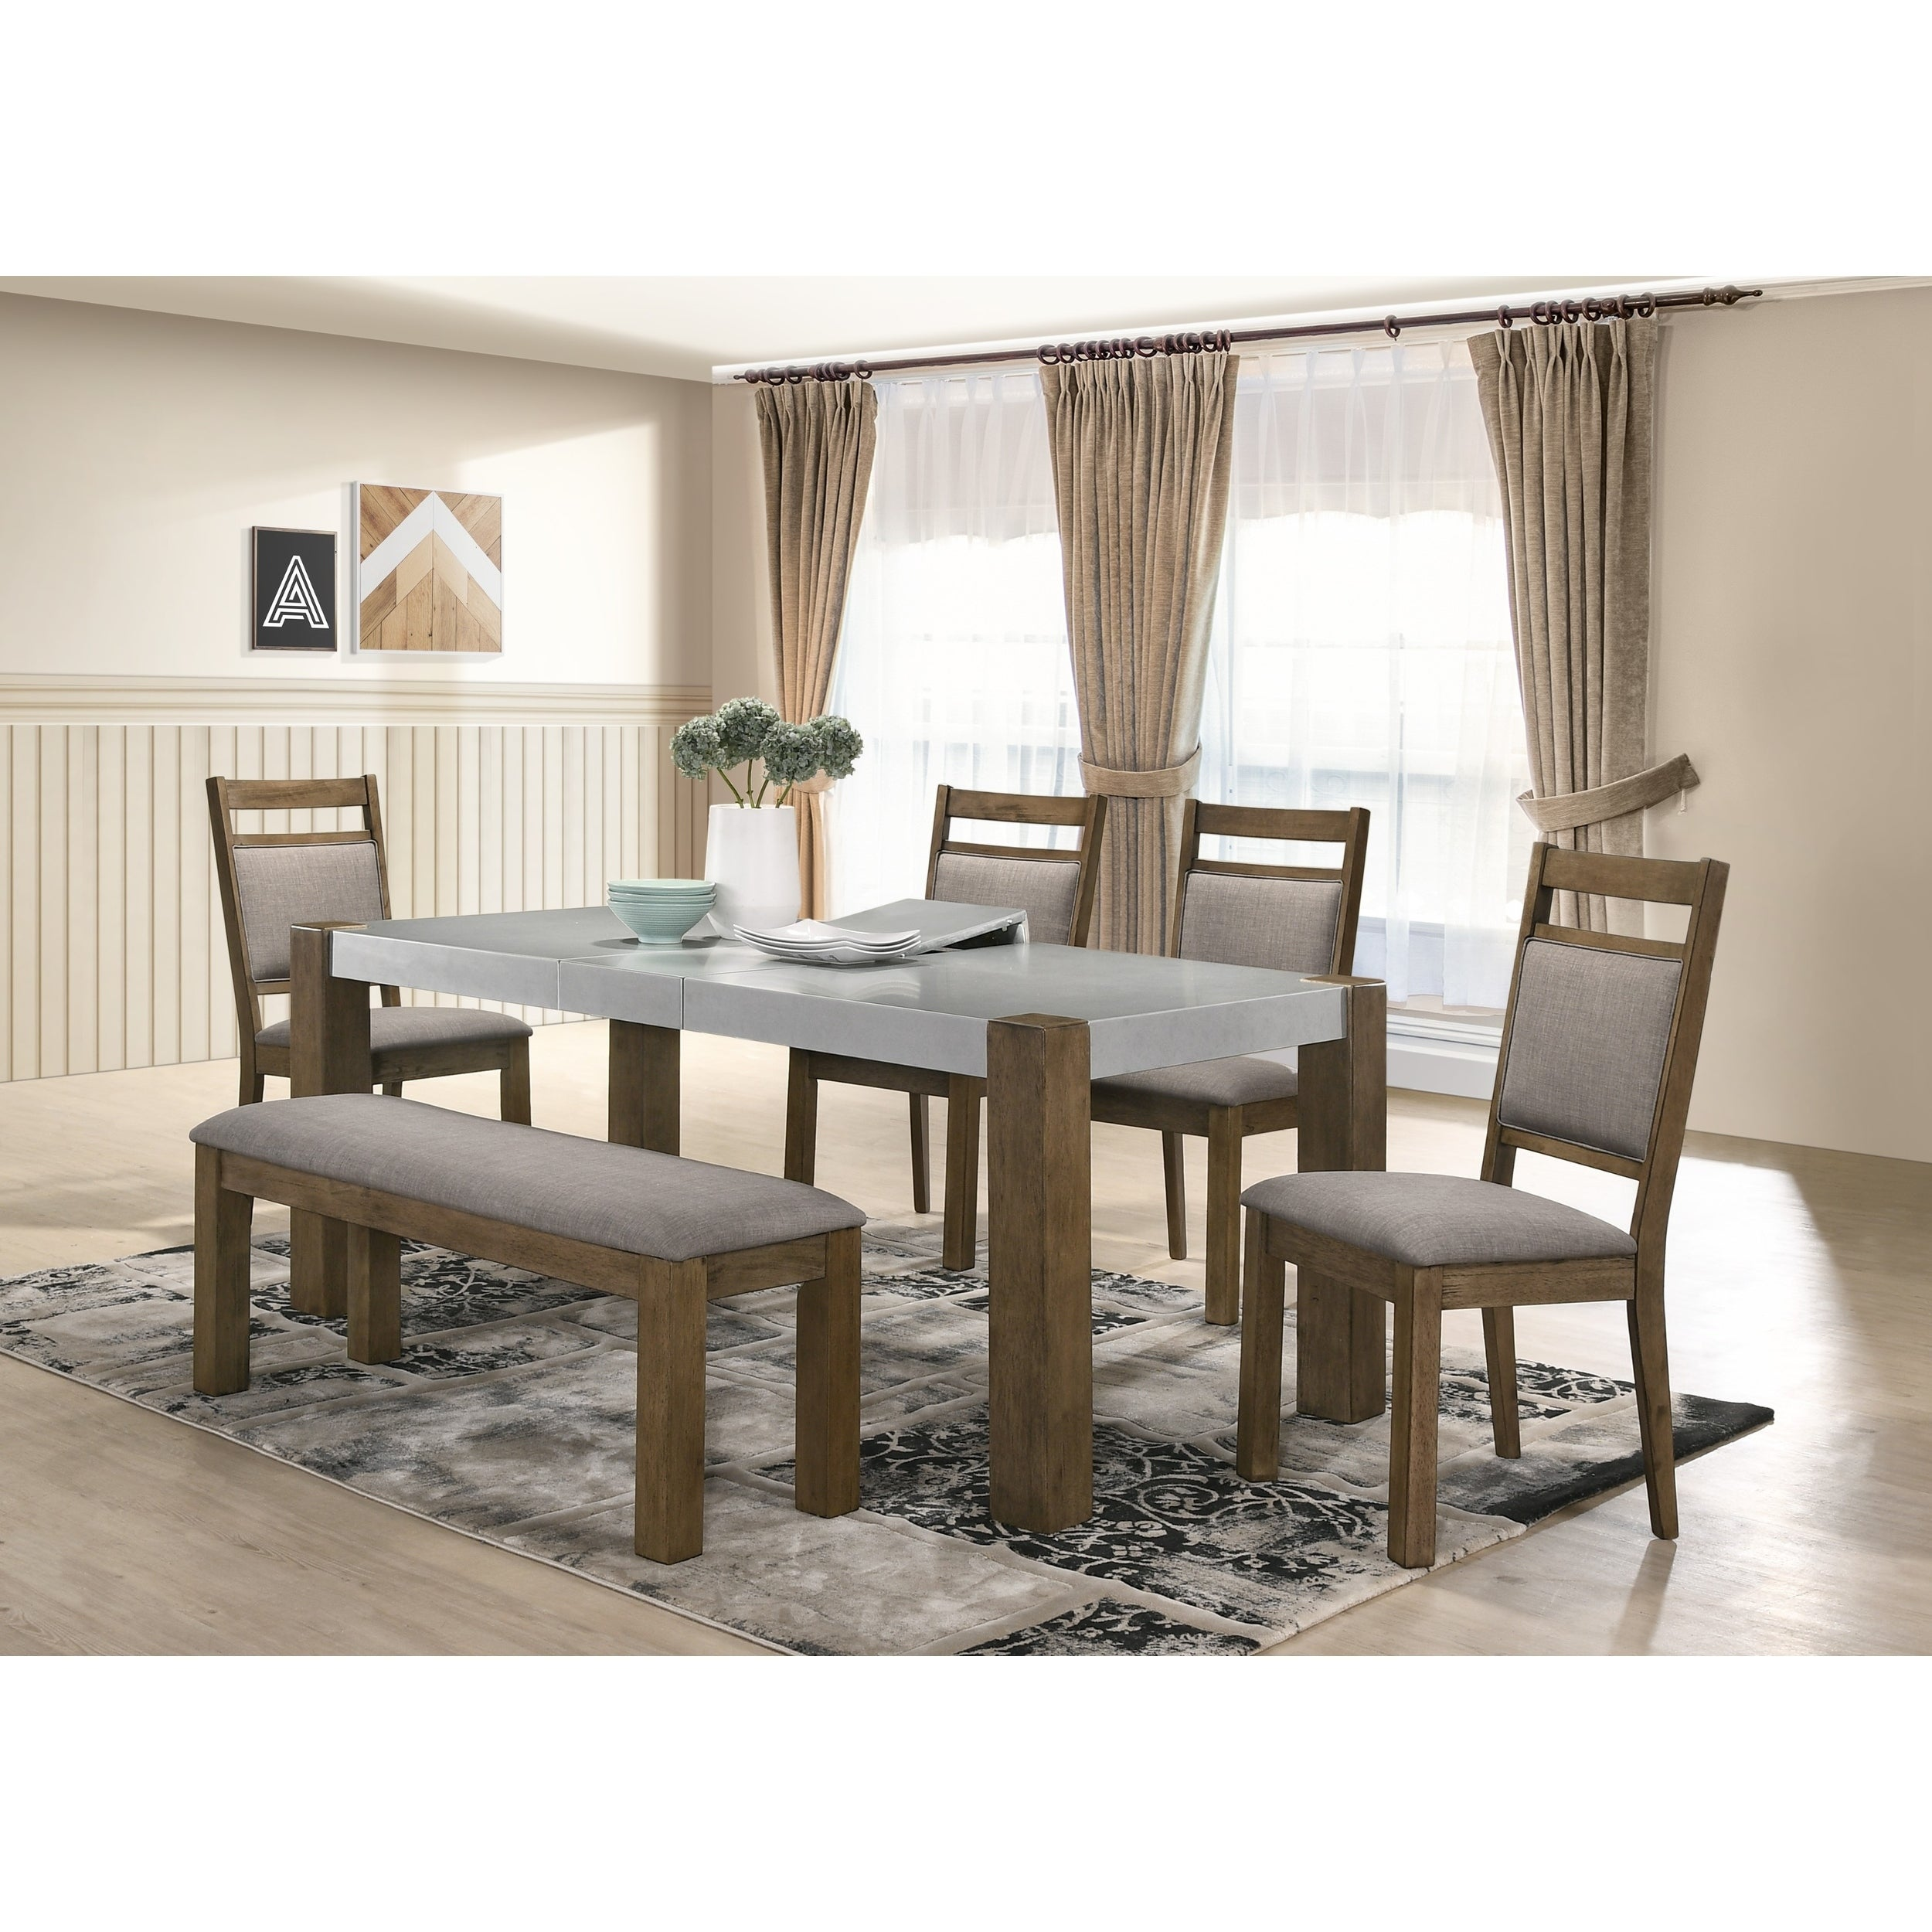 Costabella 6 PC Dining Set, Table with 4 chairs and Dinin...